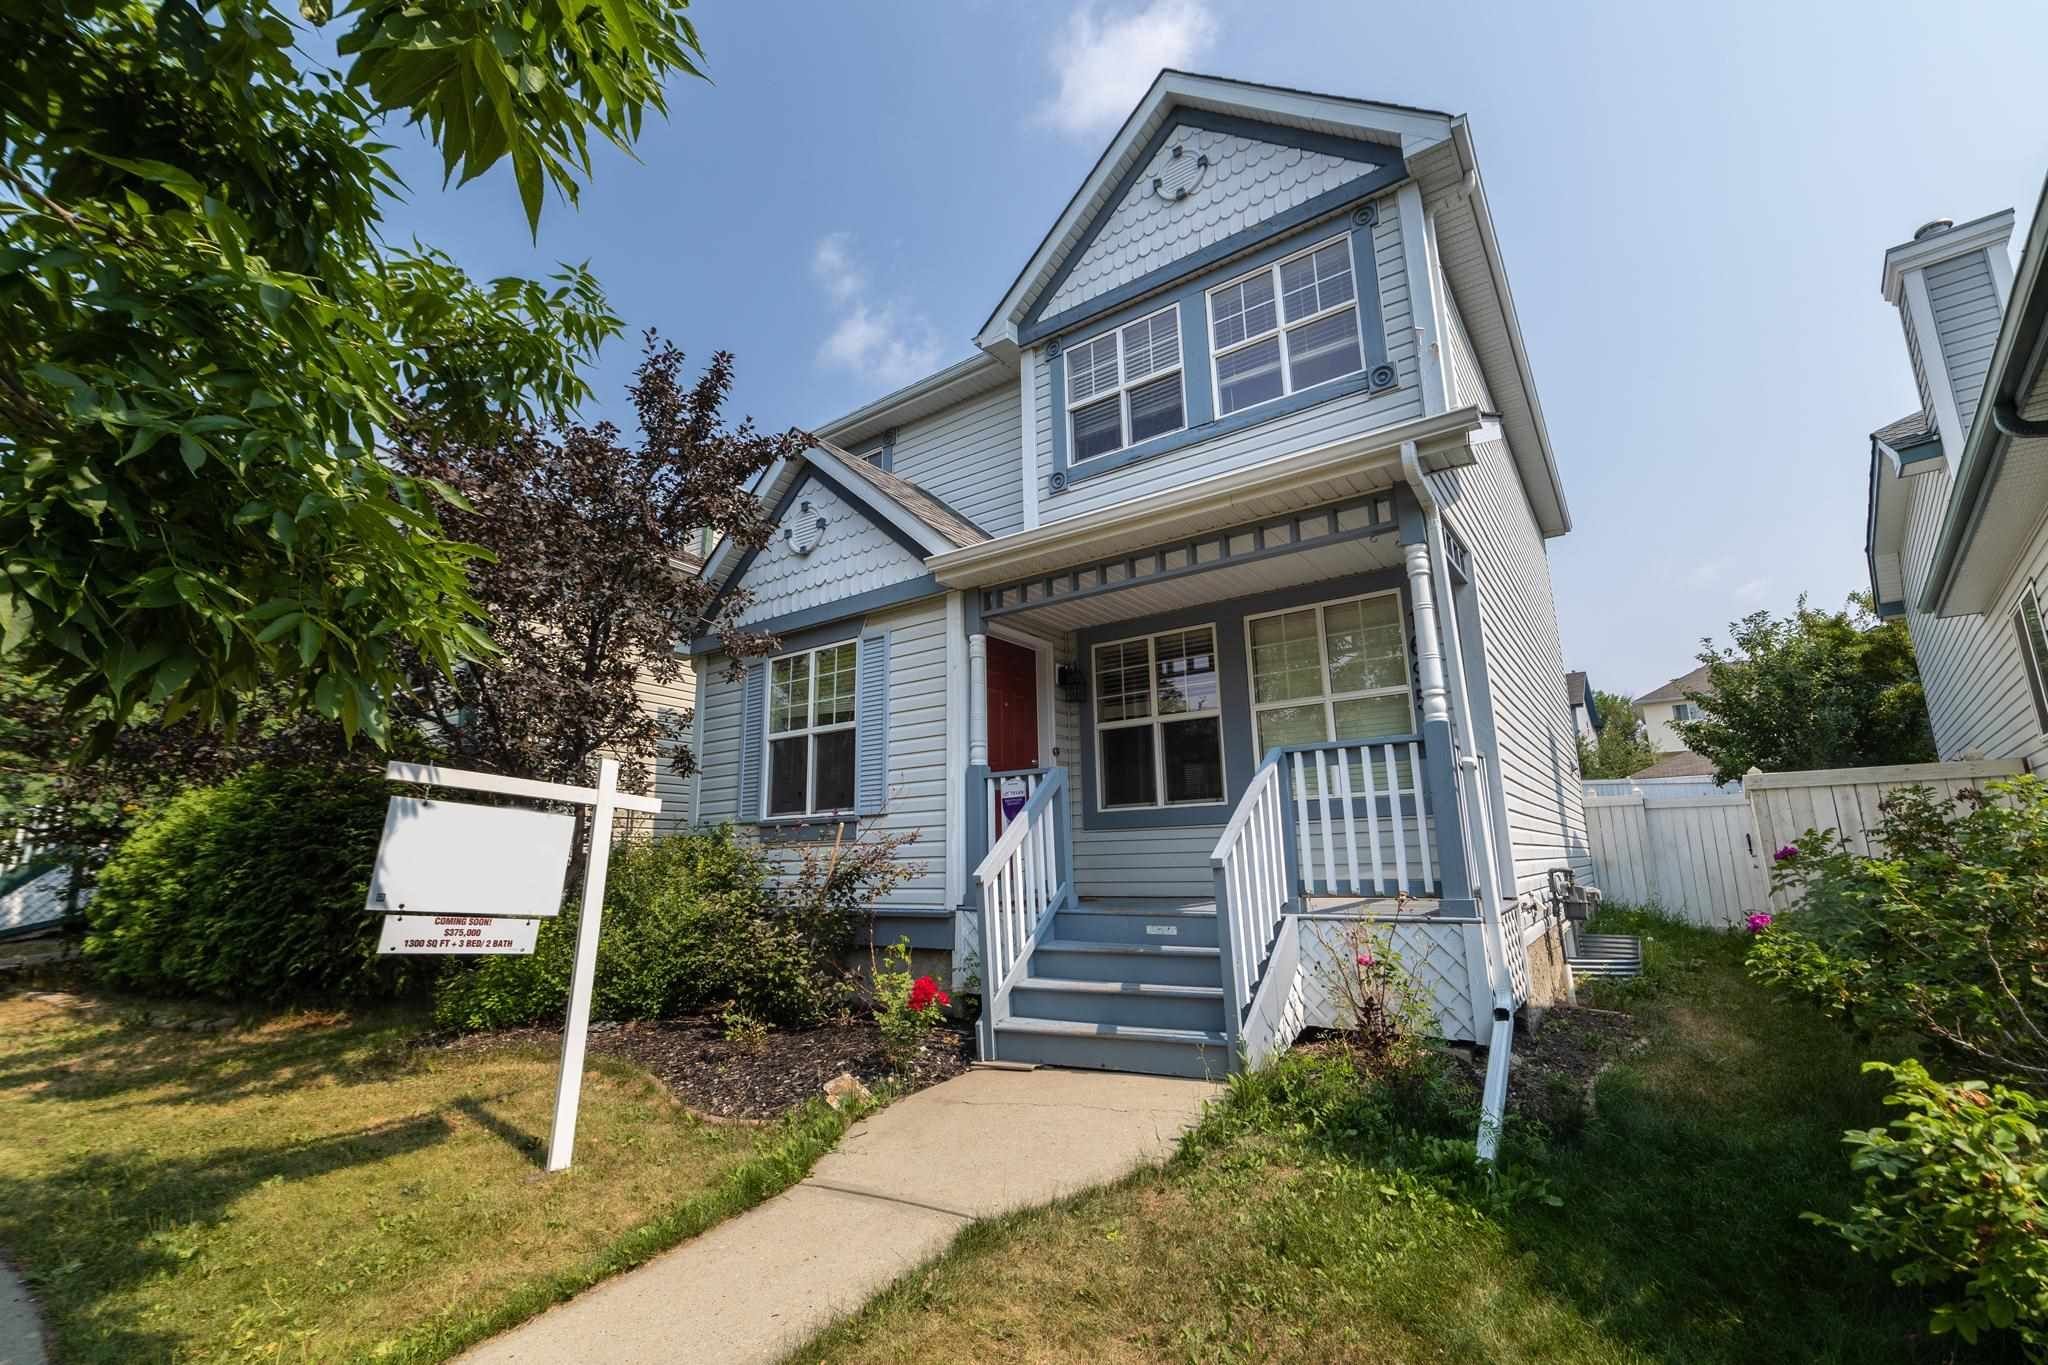 Main Photo: 1695 TOMPKINS Place in Edmonton: Zone 14 House for sale : MLS®# E4257954